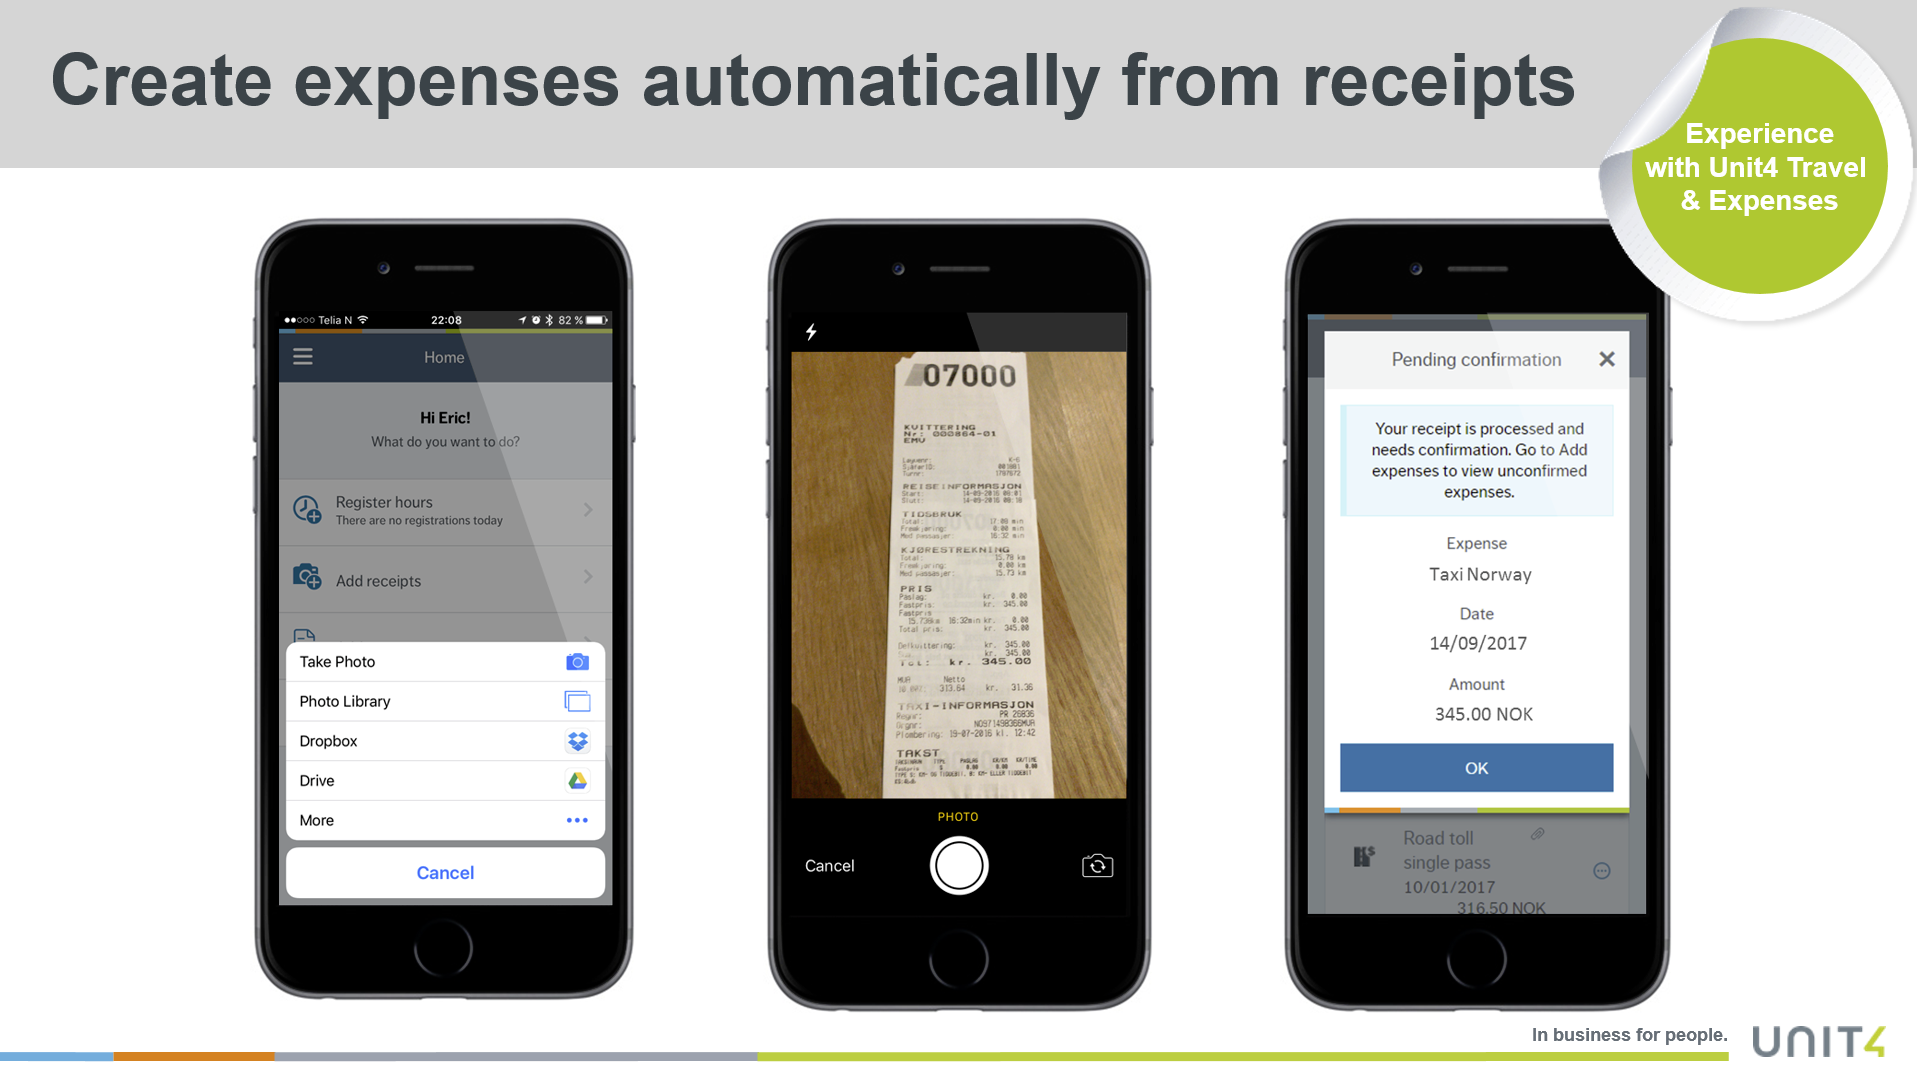 Unit4 Travel & Expenses Demo - Create expenses automatically from receipts